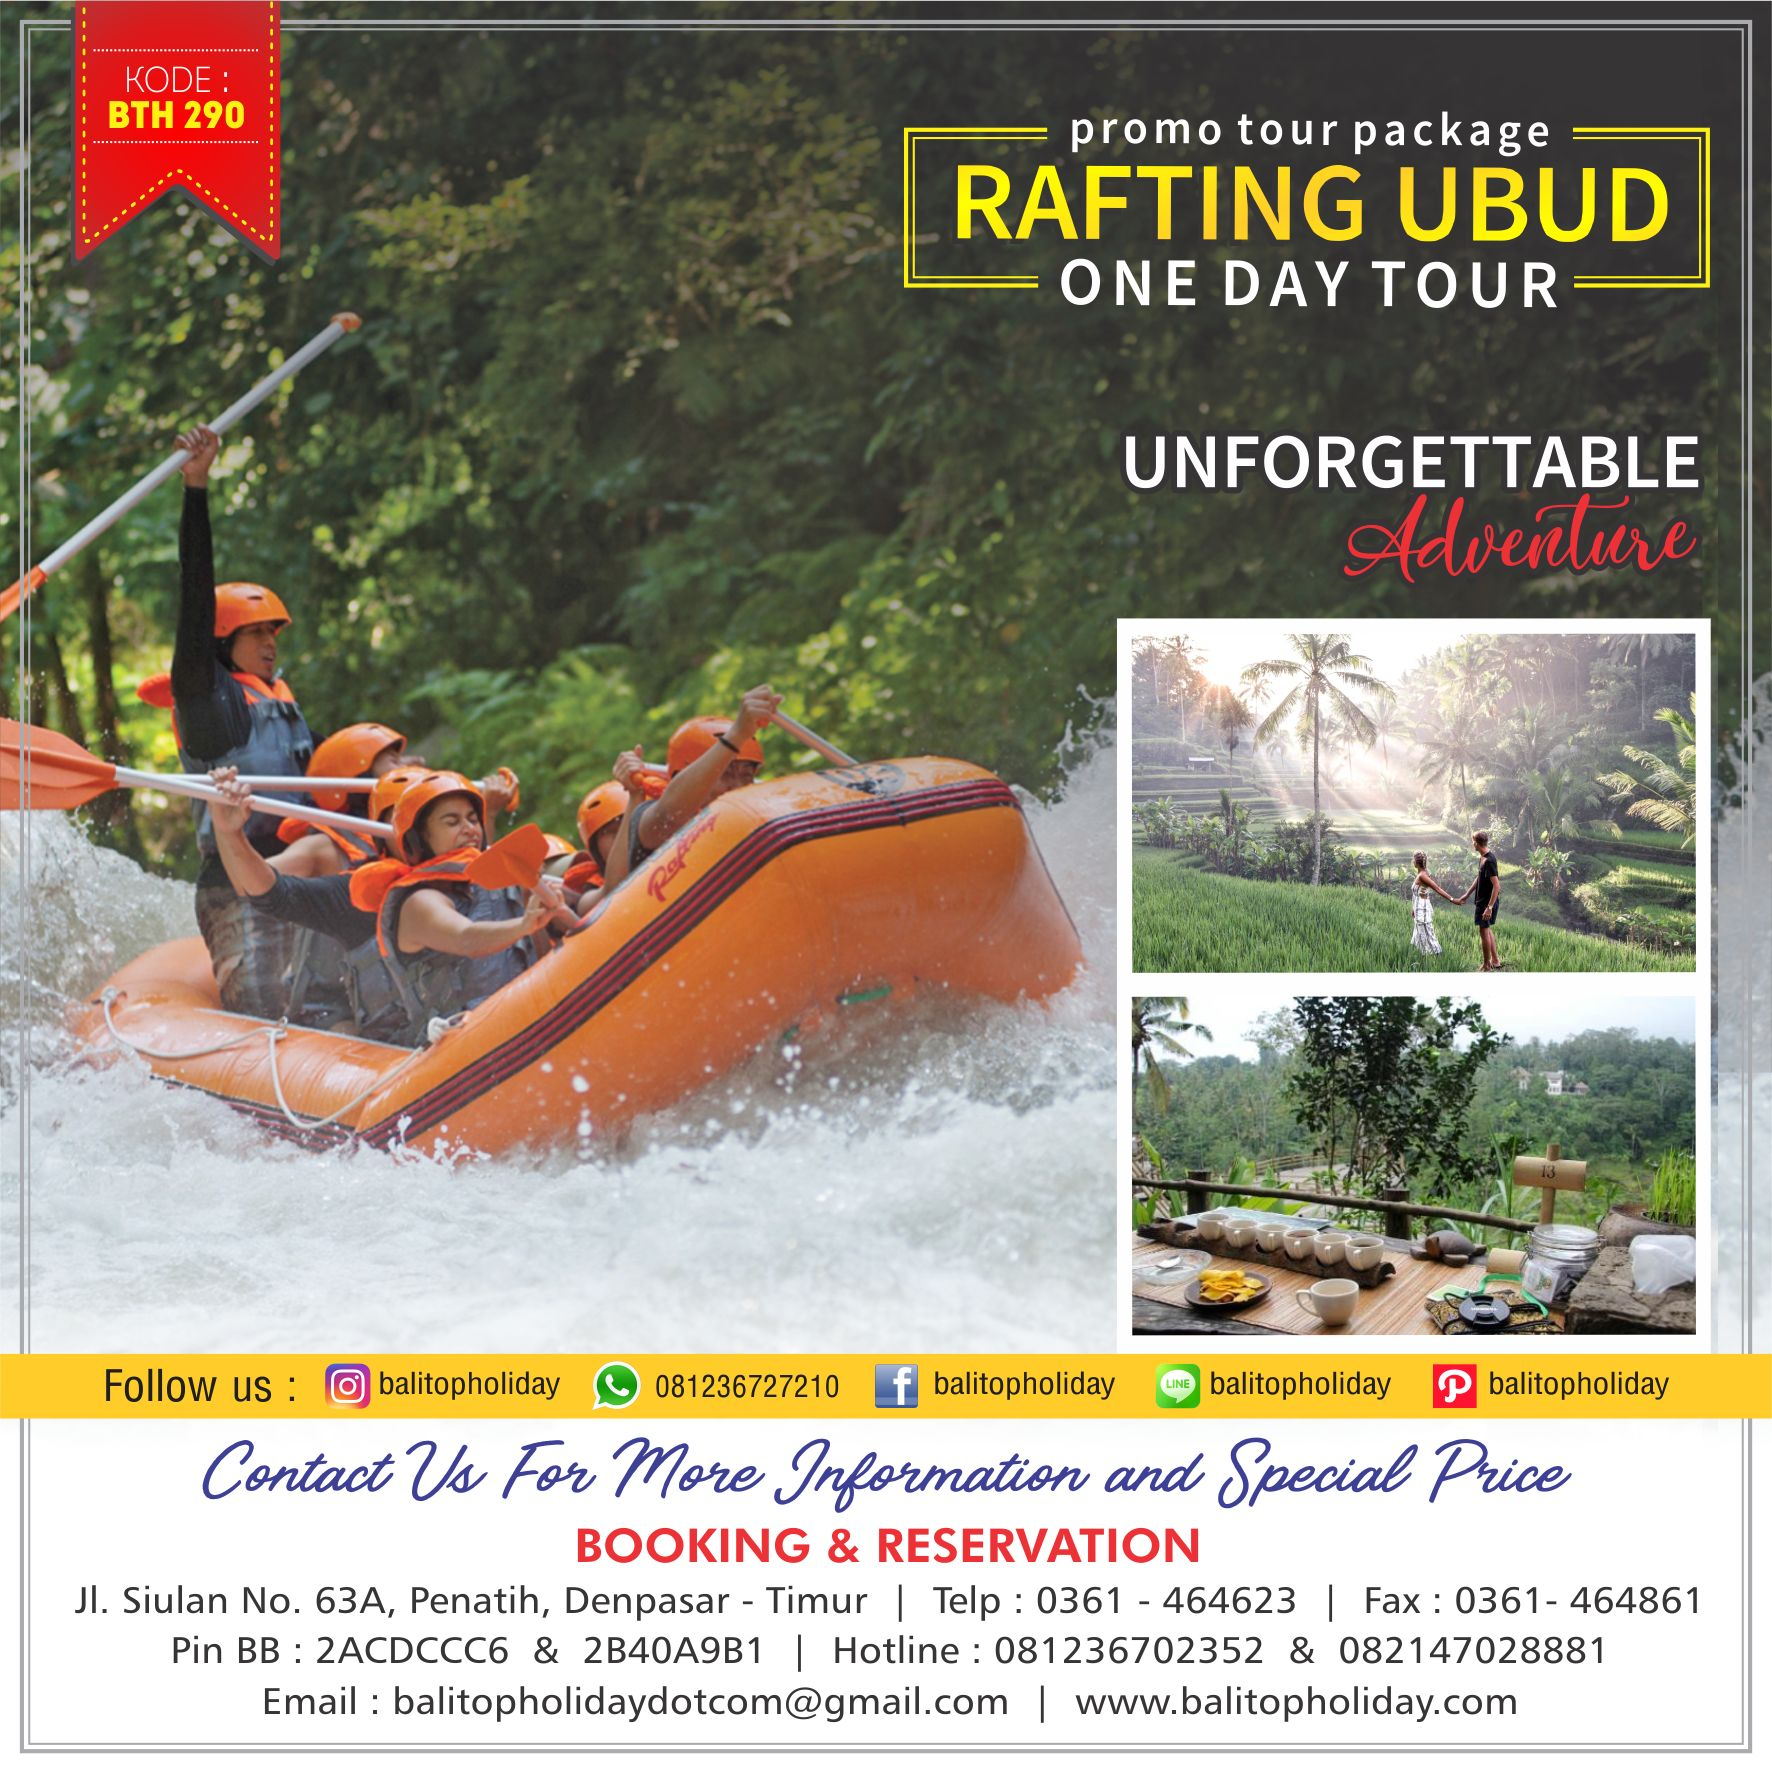 rafting ubud One Day Tour BTH 290